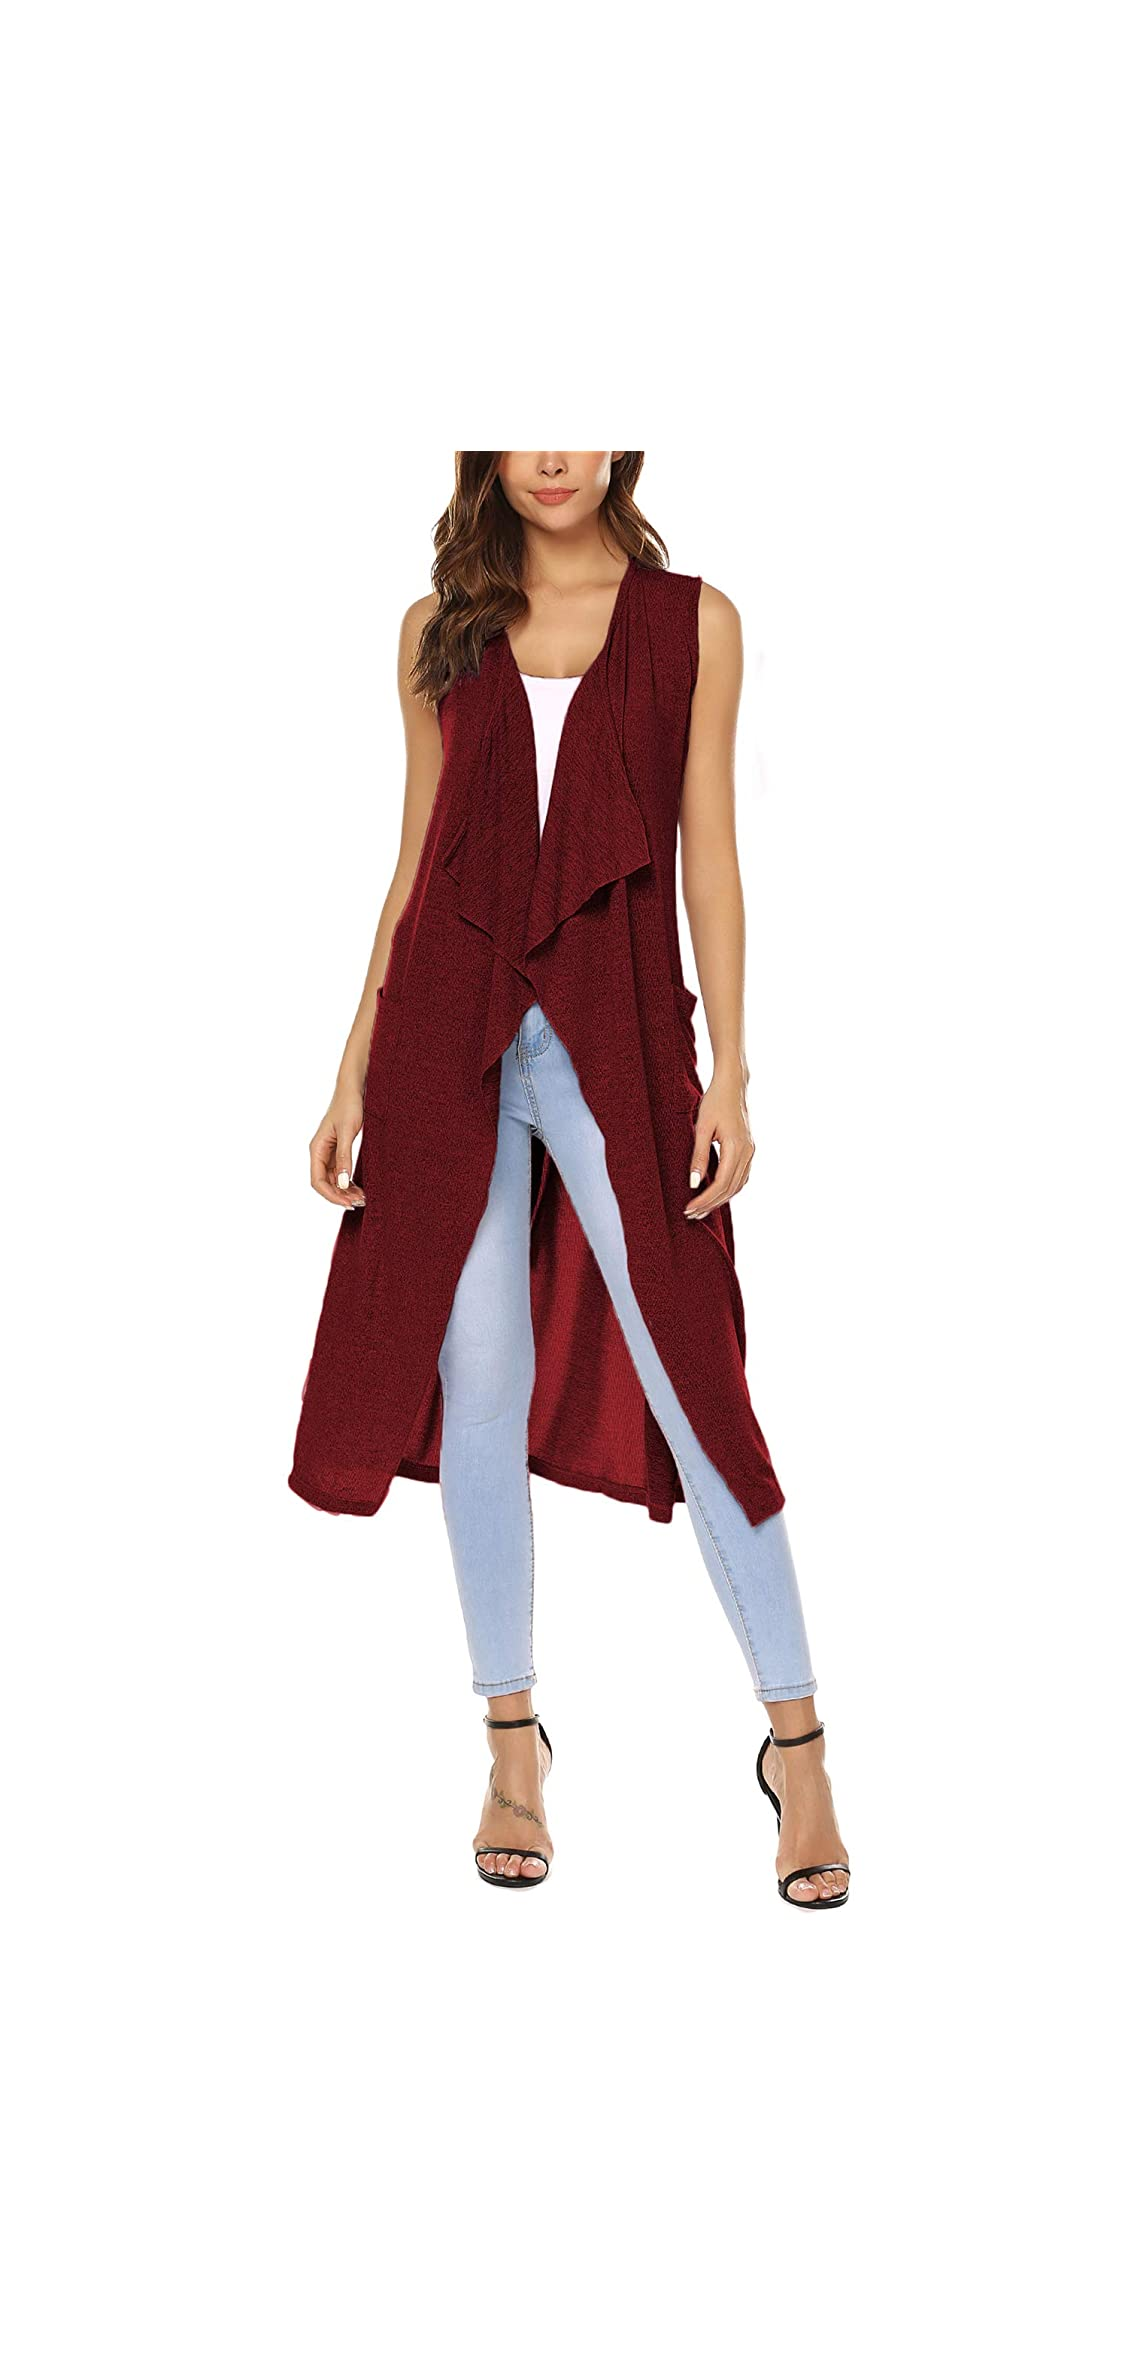 Womens Casual Sleeveless Open Front Cardigan Sweater Vest